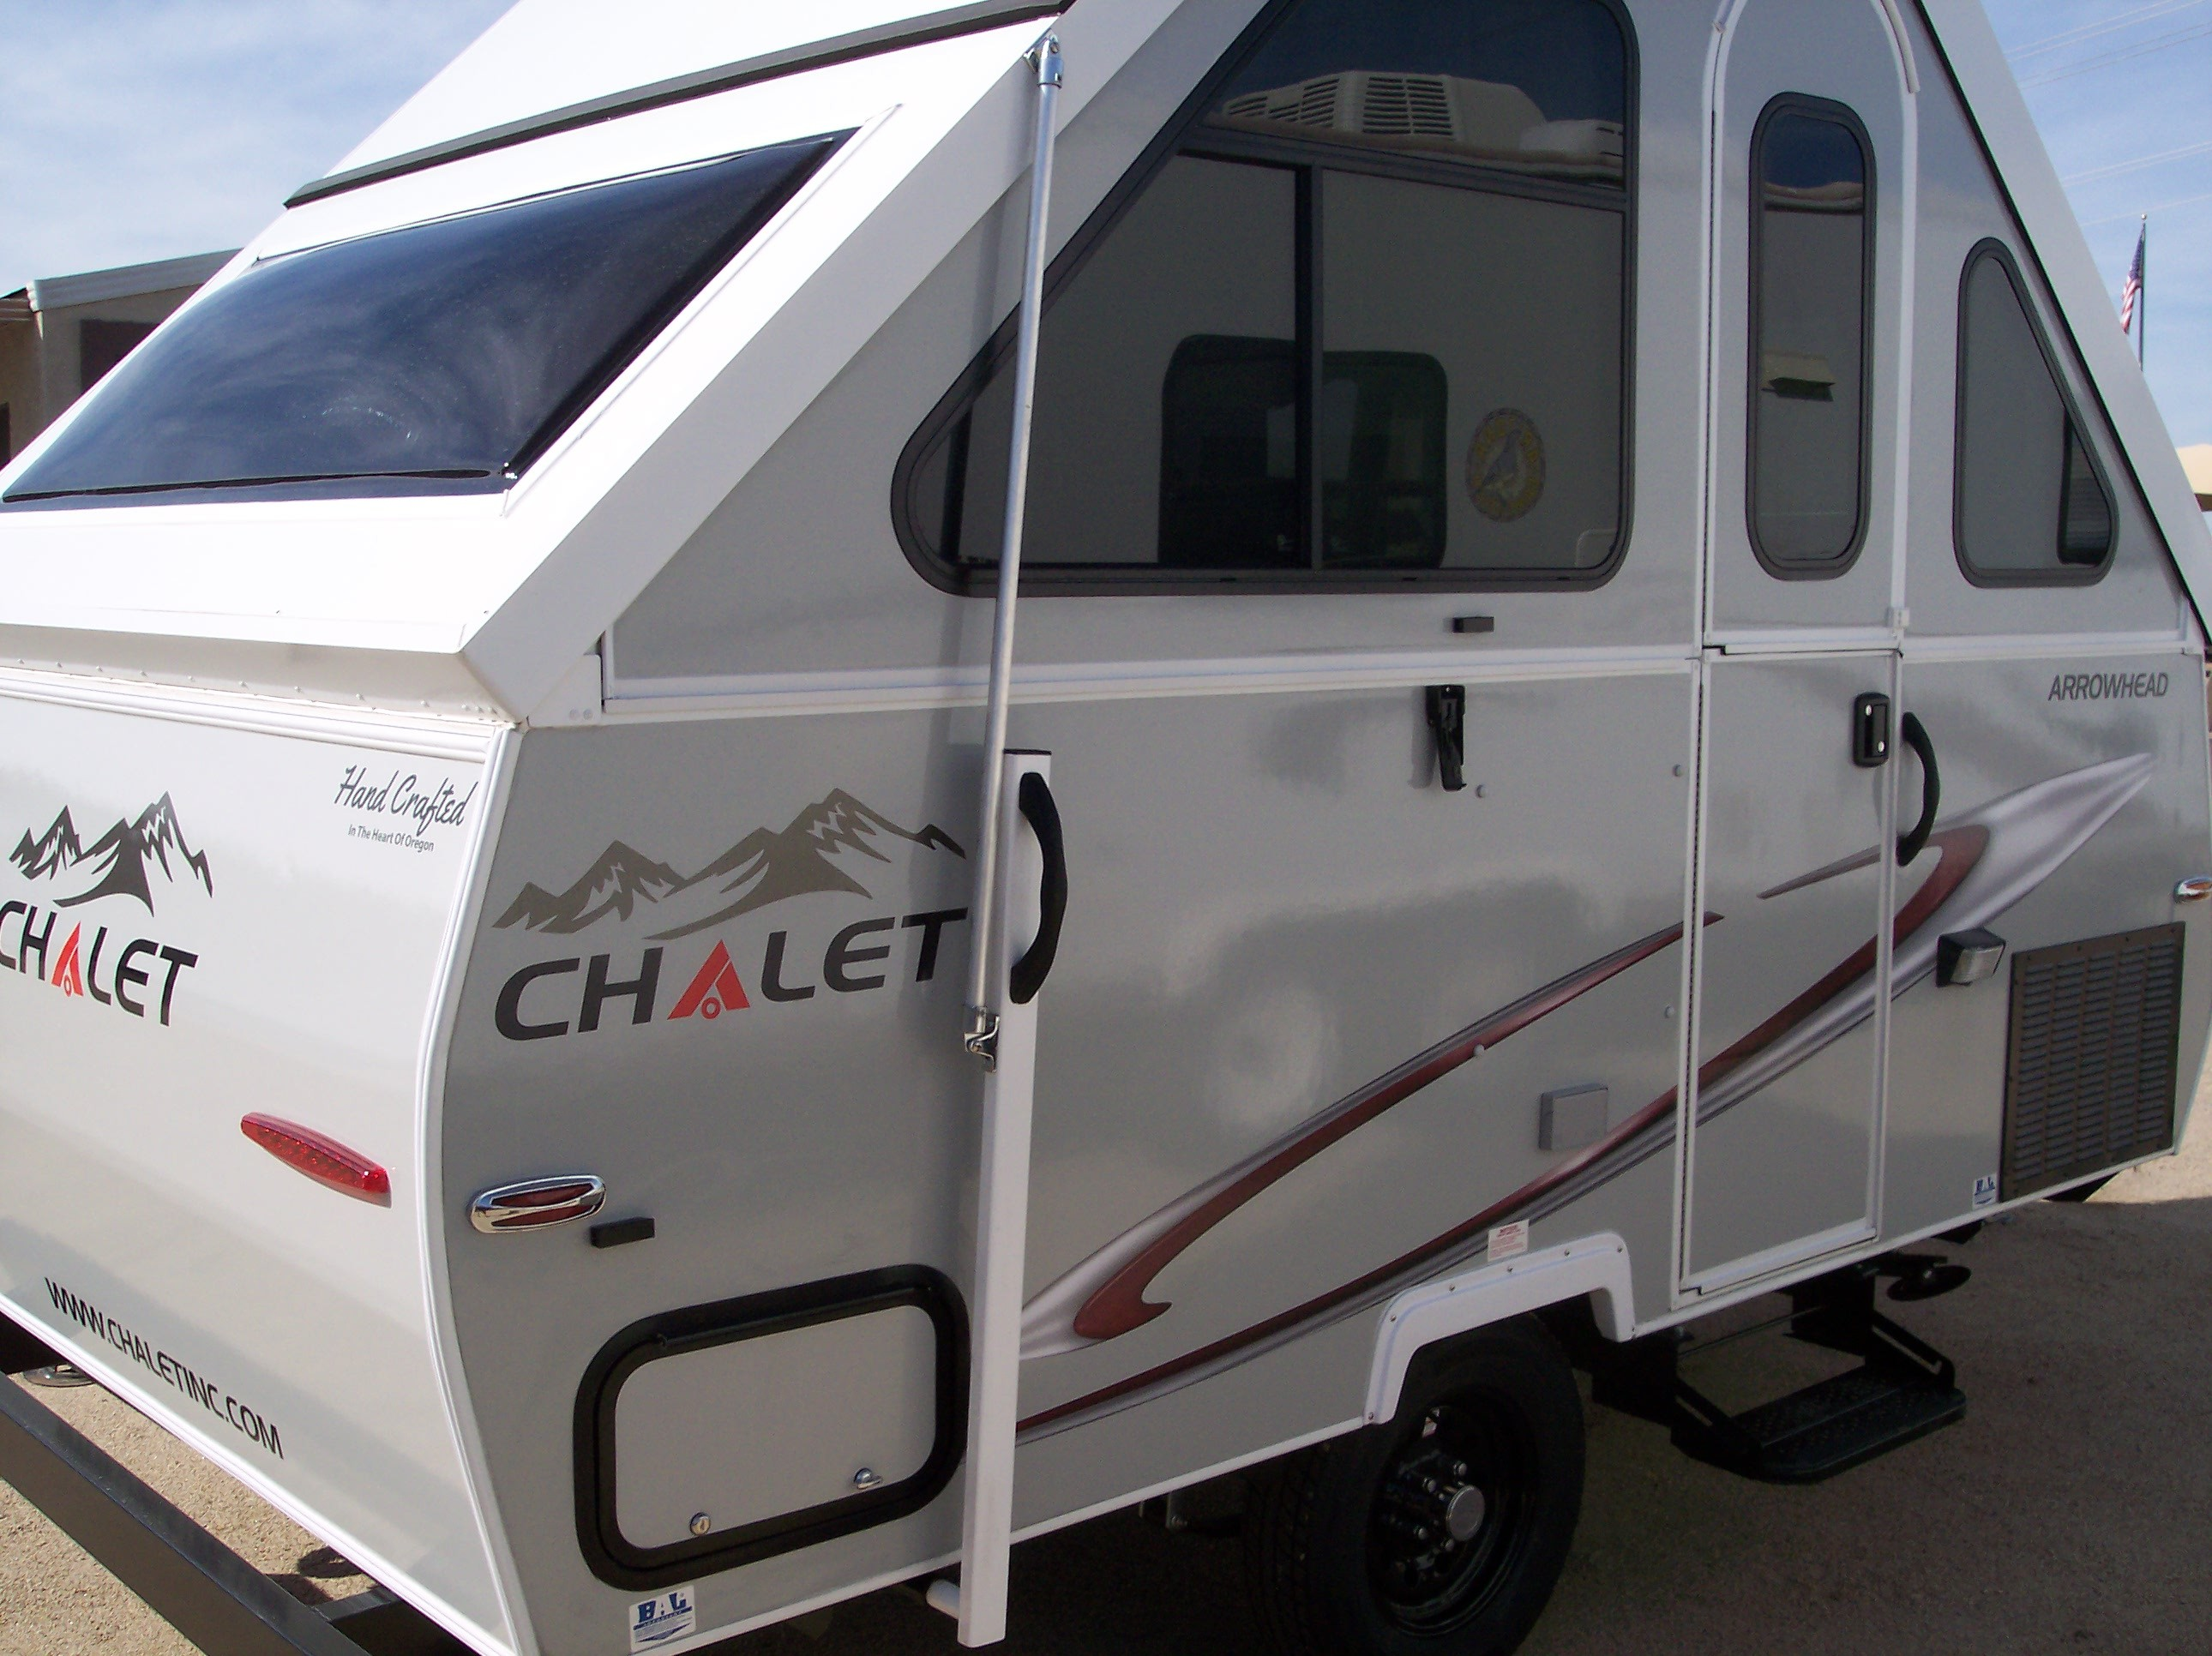 New 2019 Chalet Arrowhead Travel Trailers